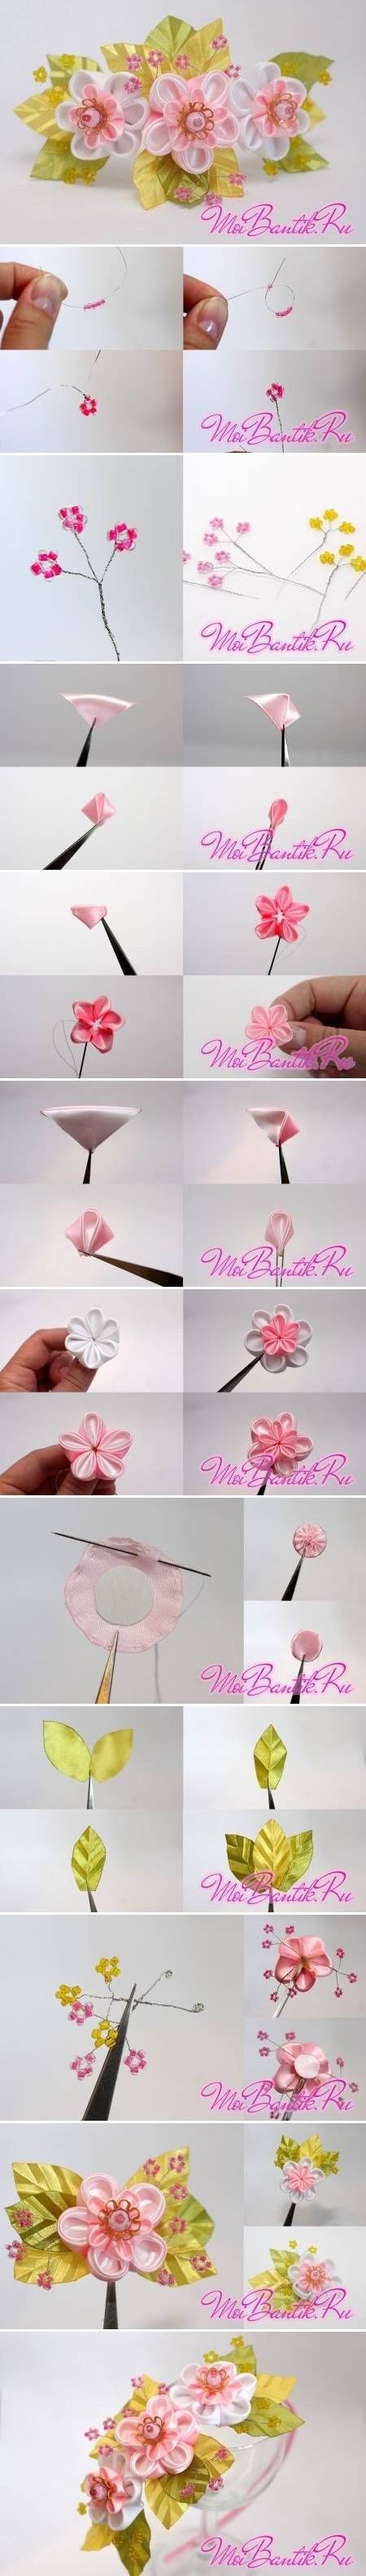 DIY Ribbon Flower flowers diy crafts home made easy crafts craft ...